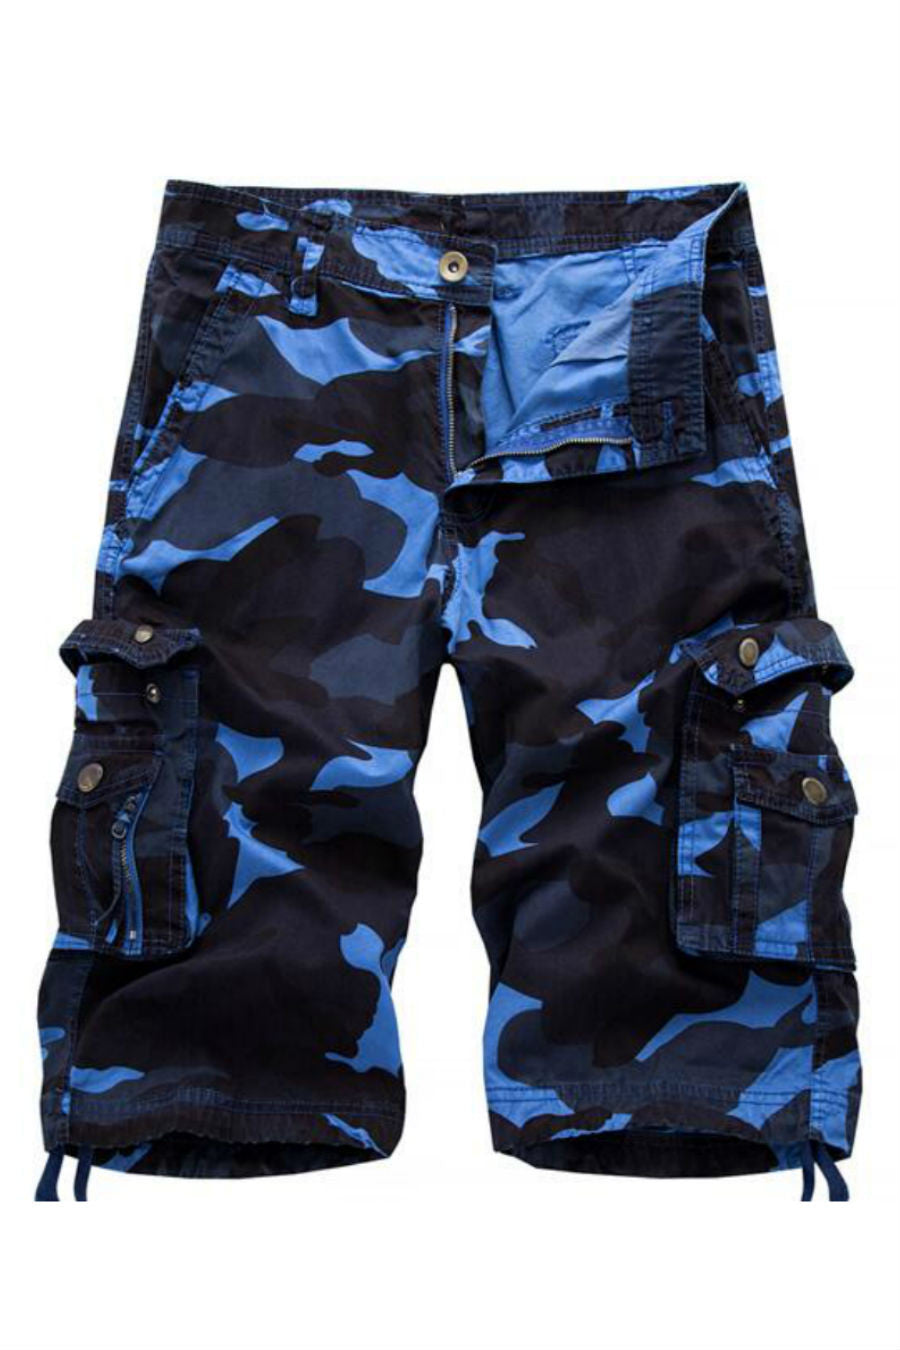 Casual Blue Camo Cargo Shorts. Tap to expand bb6d0a6500dc